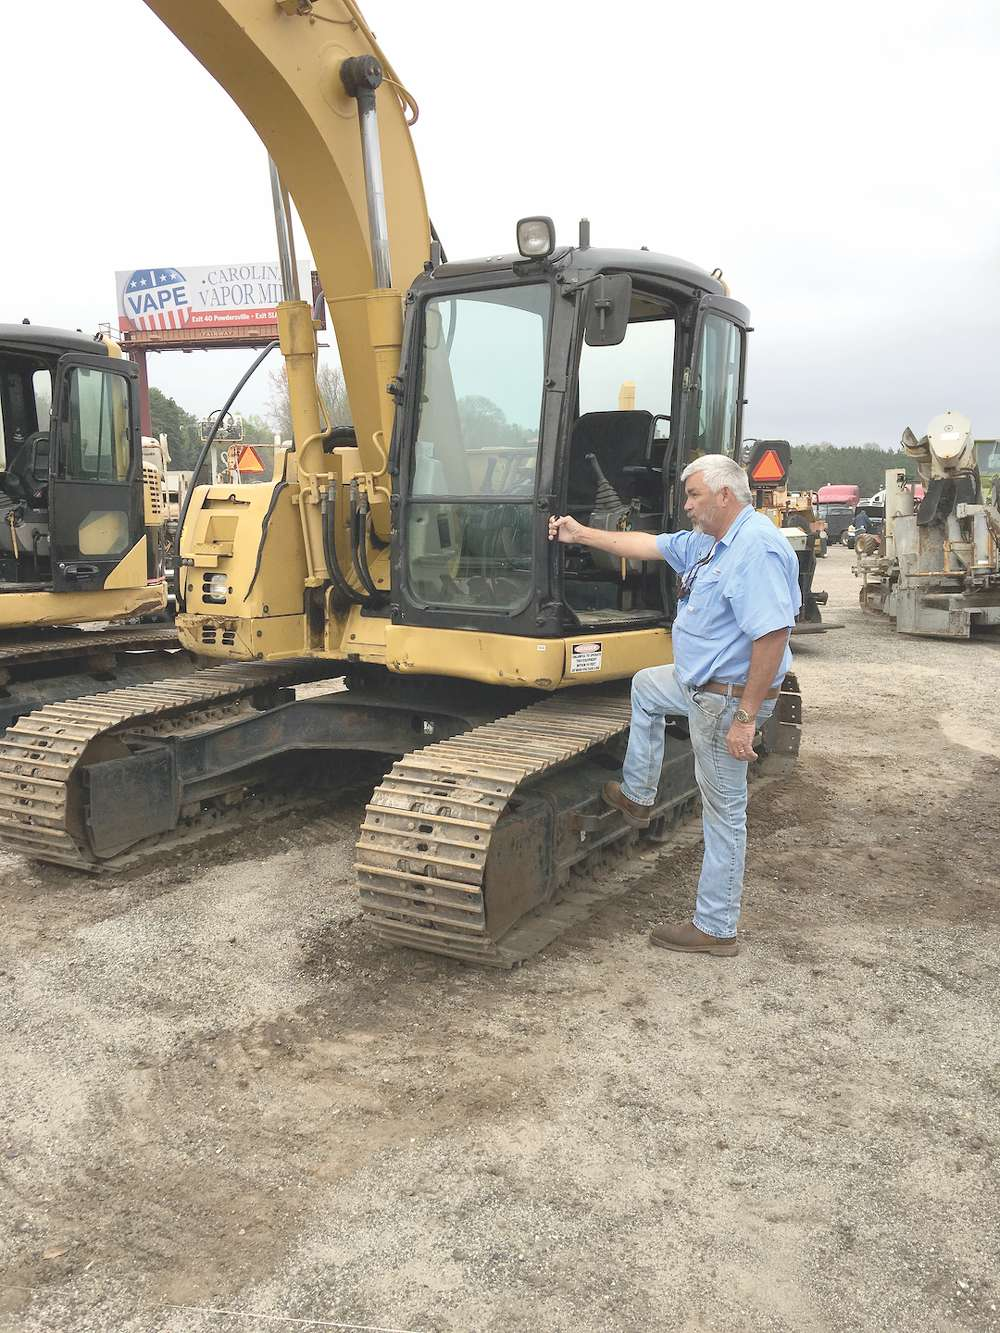 David Smith of Smith Tree Service, Anderson, S.C. tests this Cat 314C excavator and plans to bid on it.